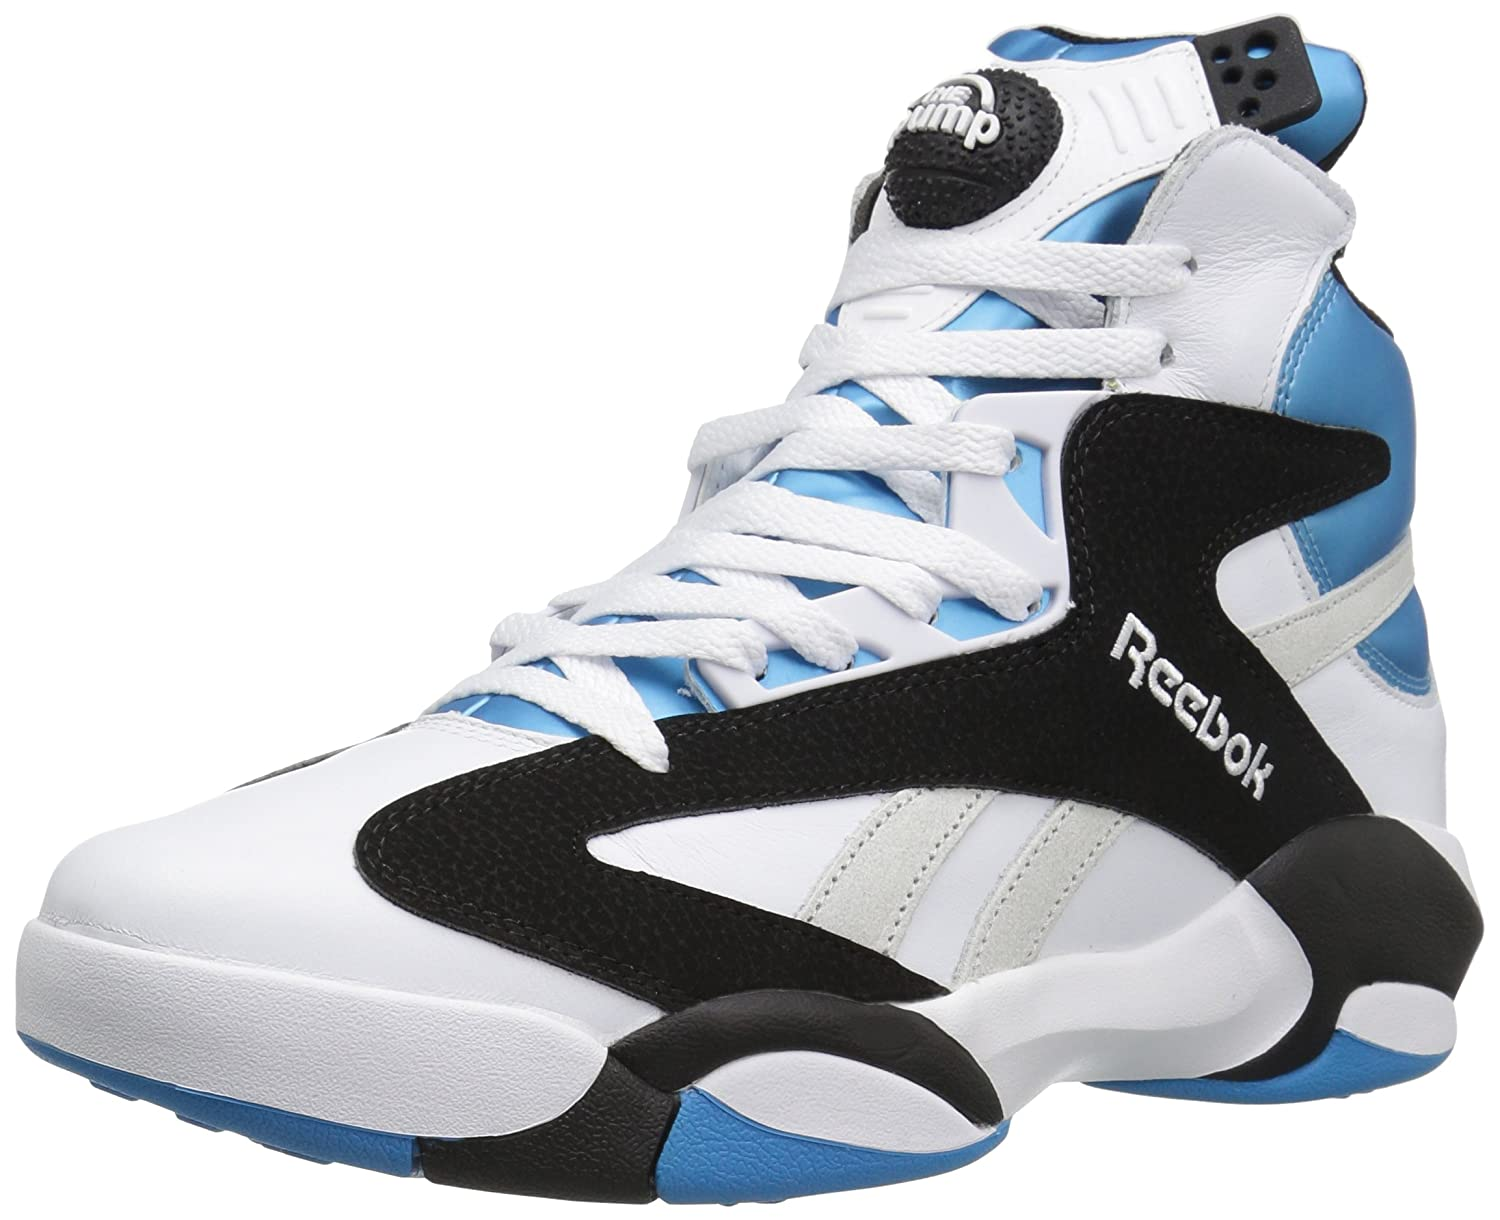 Reebok Mens Shoes / Team Purple Blaze Yellow White Boys Shoes Reebok Shaq Attack RH113316u1